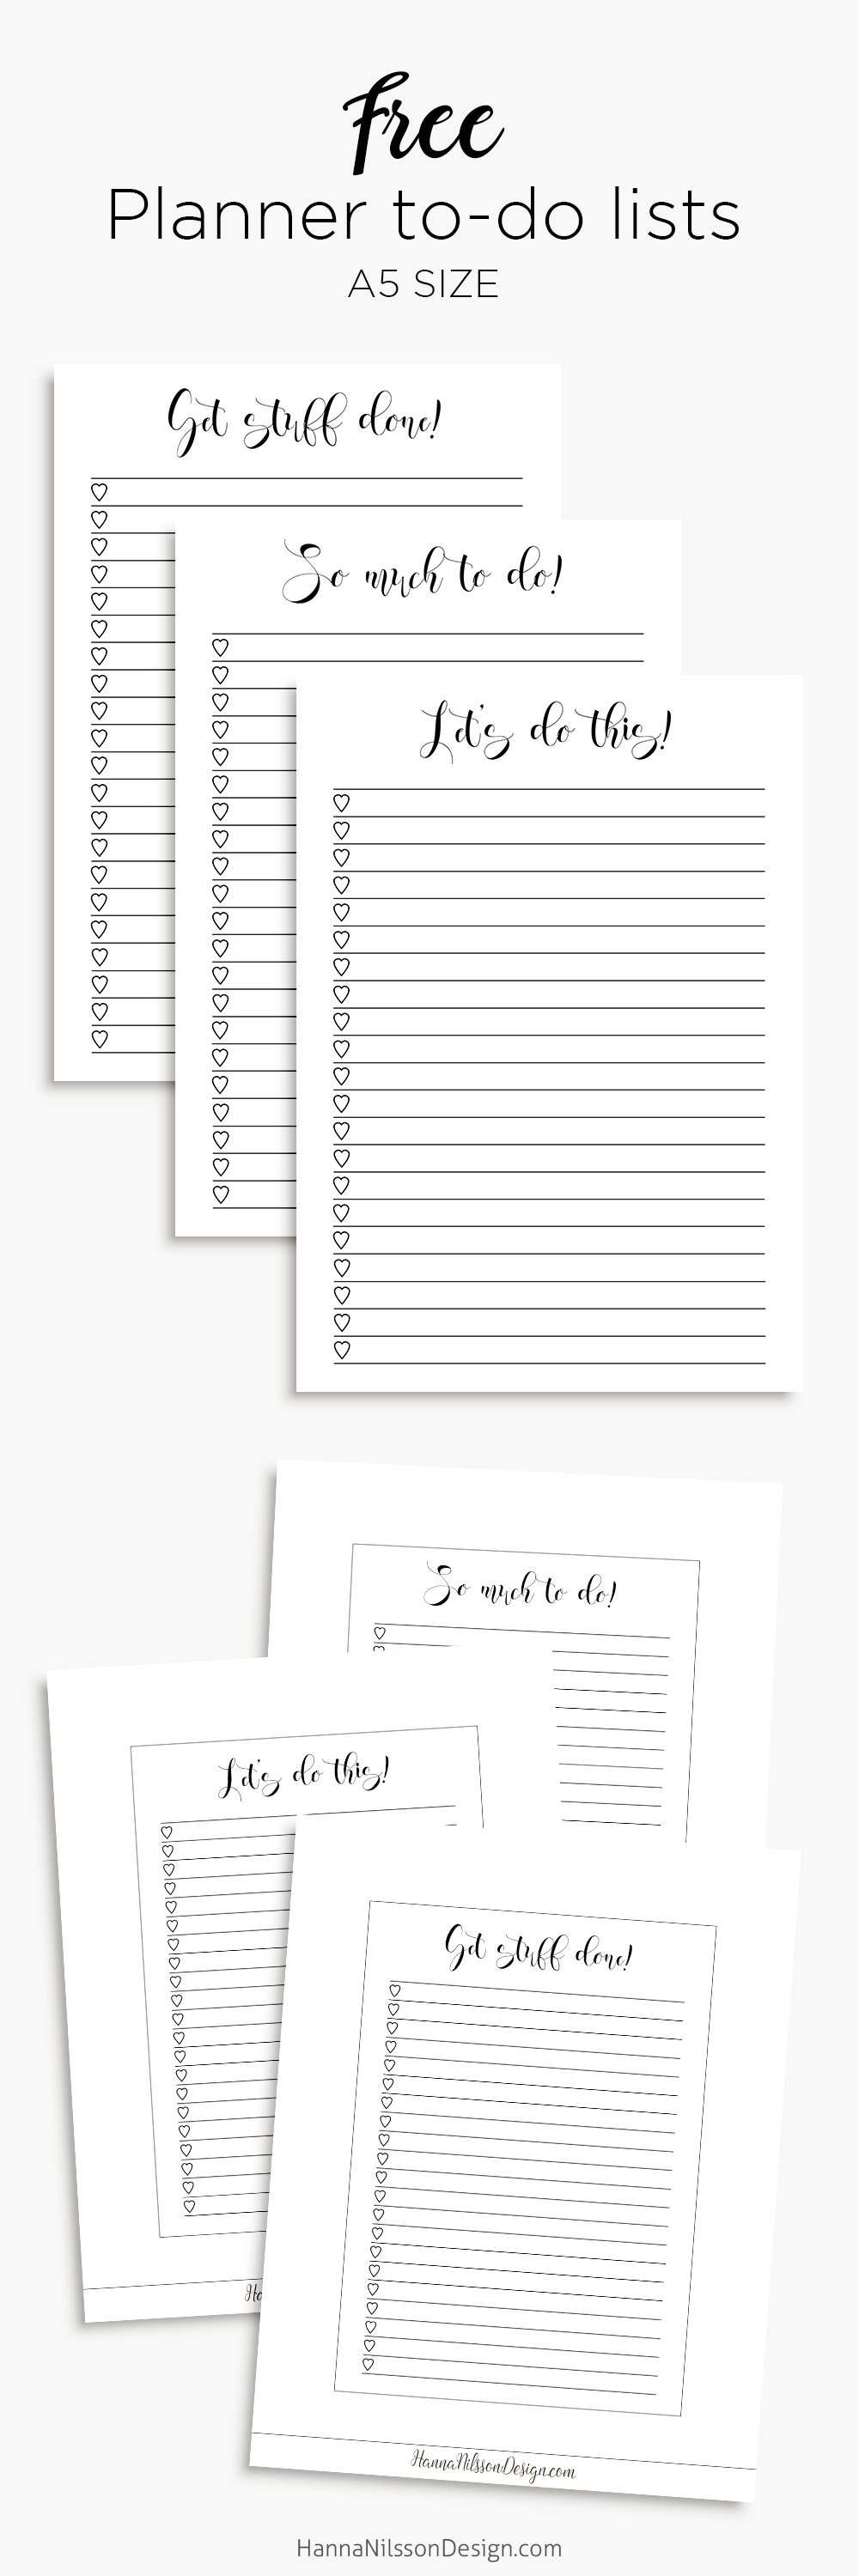 graphic relating to A5 Planner Printables named Planner in the direction of-do lists printable inside A5 and Person dimensions